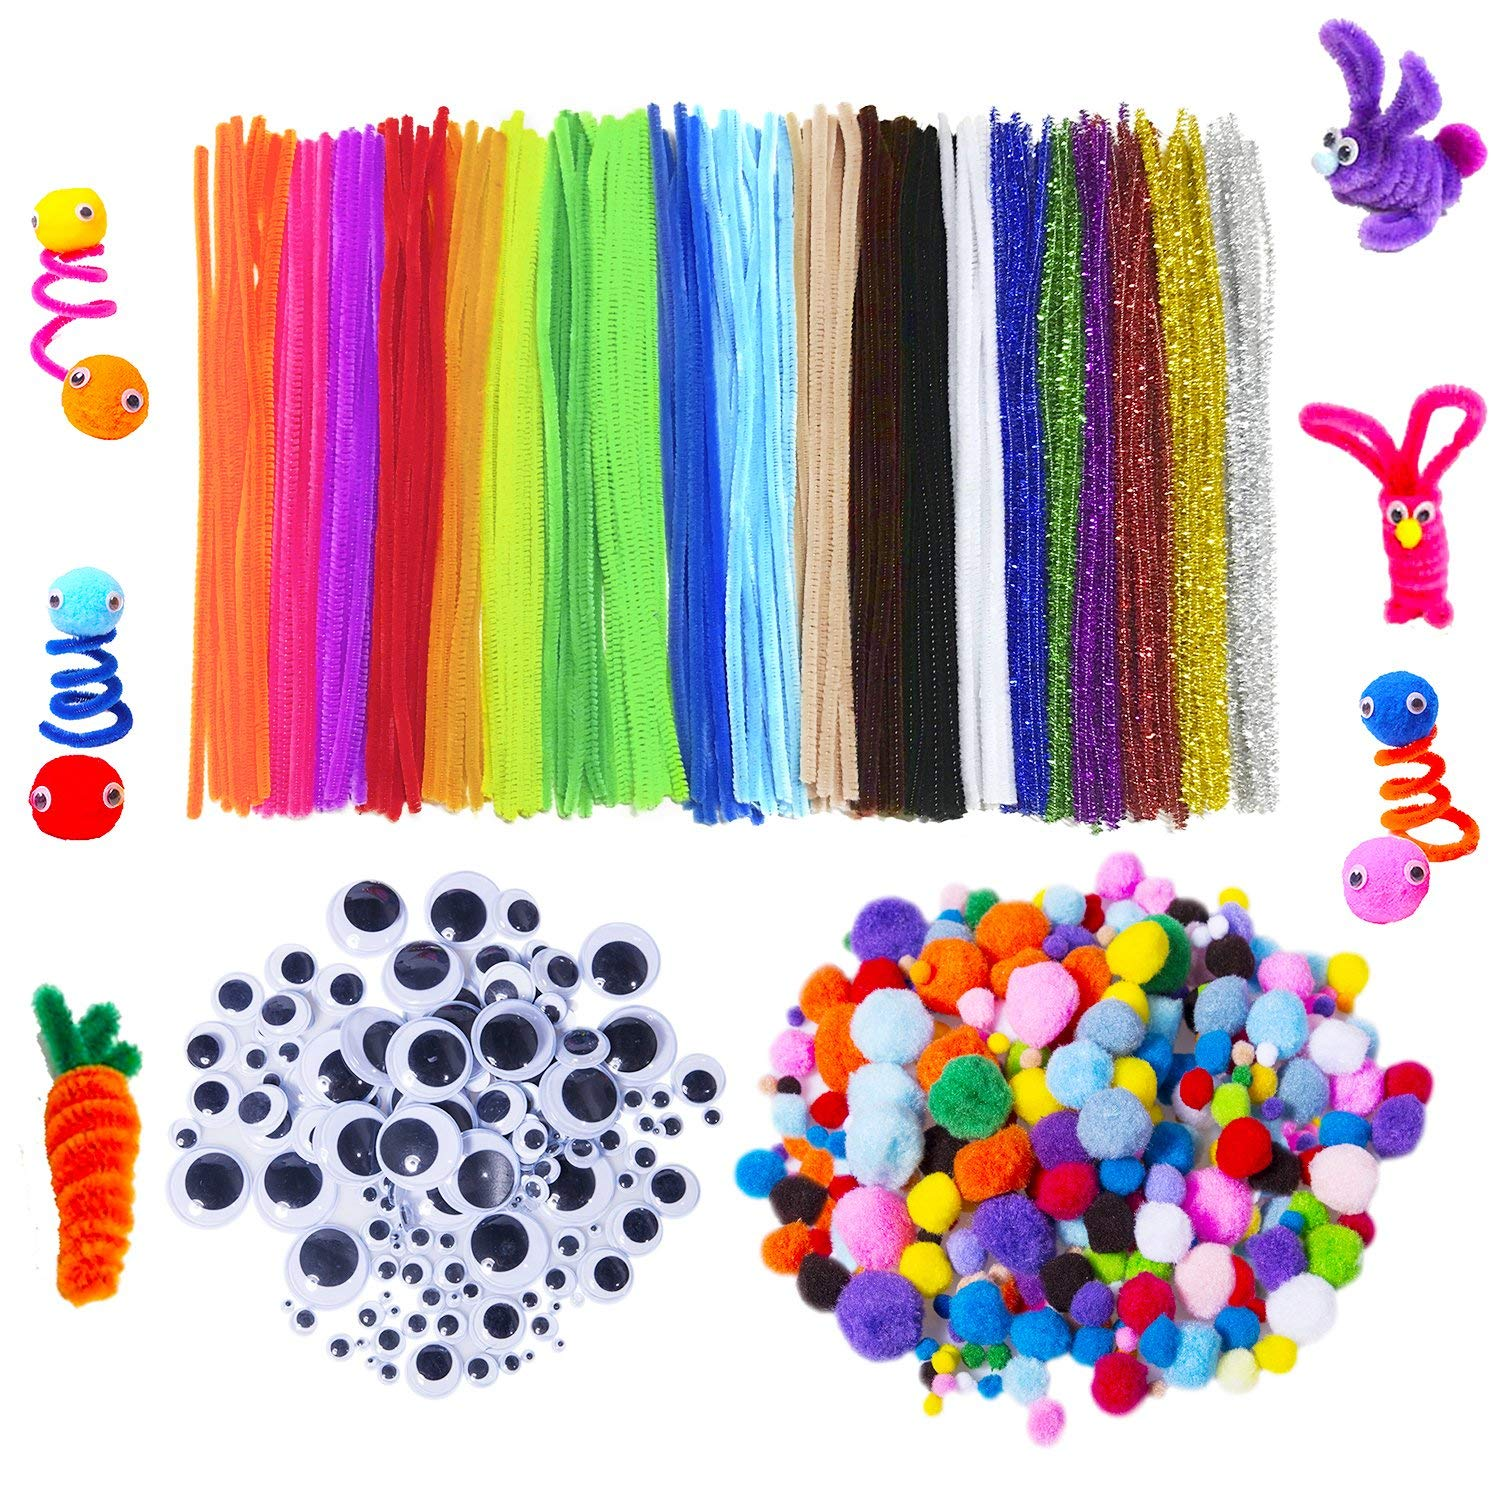 500 Pcs 6 Size Wiggle Googly Eyes and 100 Pcs Multi Sized Pompoms for DIY Art Supplies 650 Pcs Assorted Colors Pipe Cleaners Set Including 50 Pcs 10 Colors Craft Chenille Stems